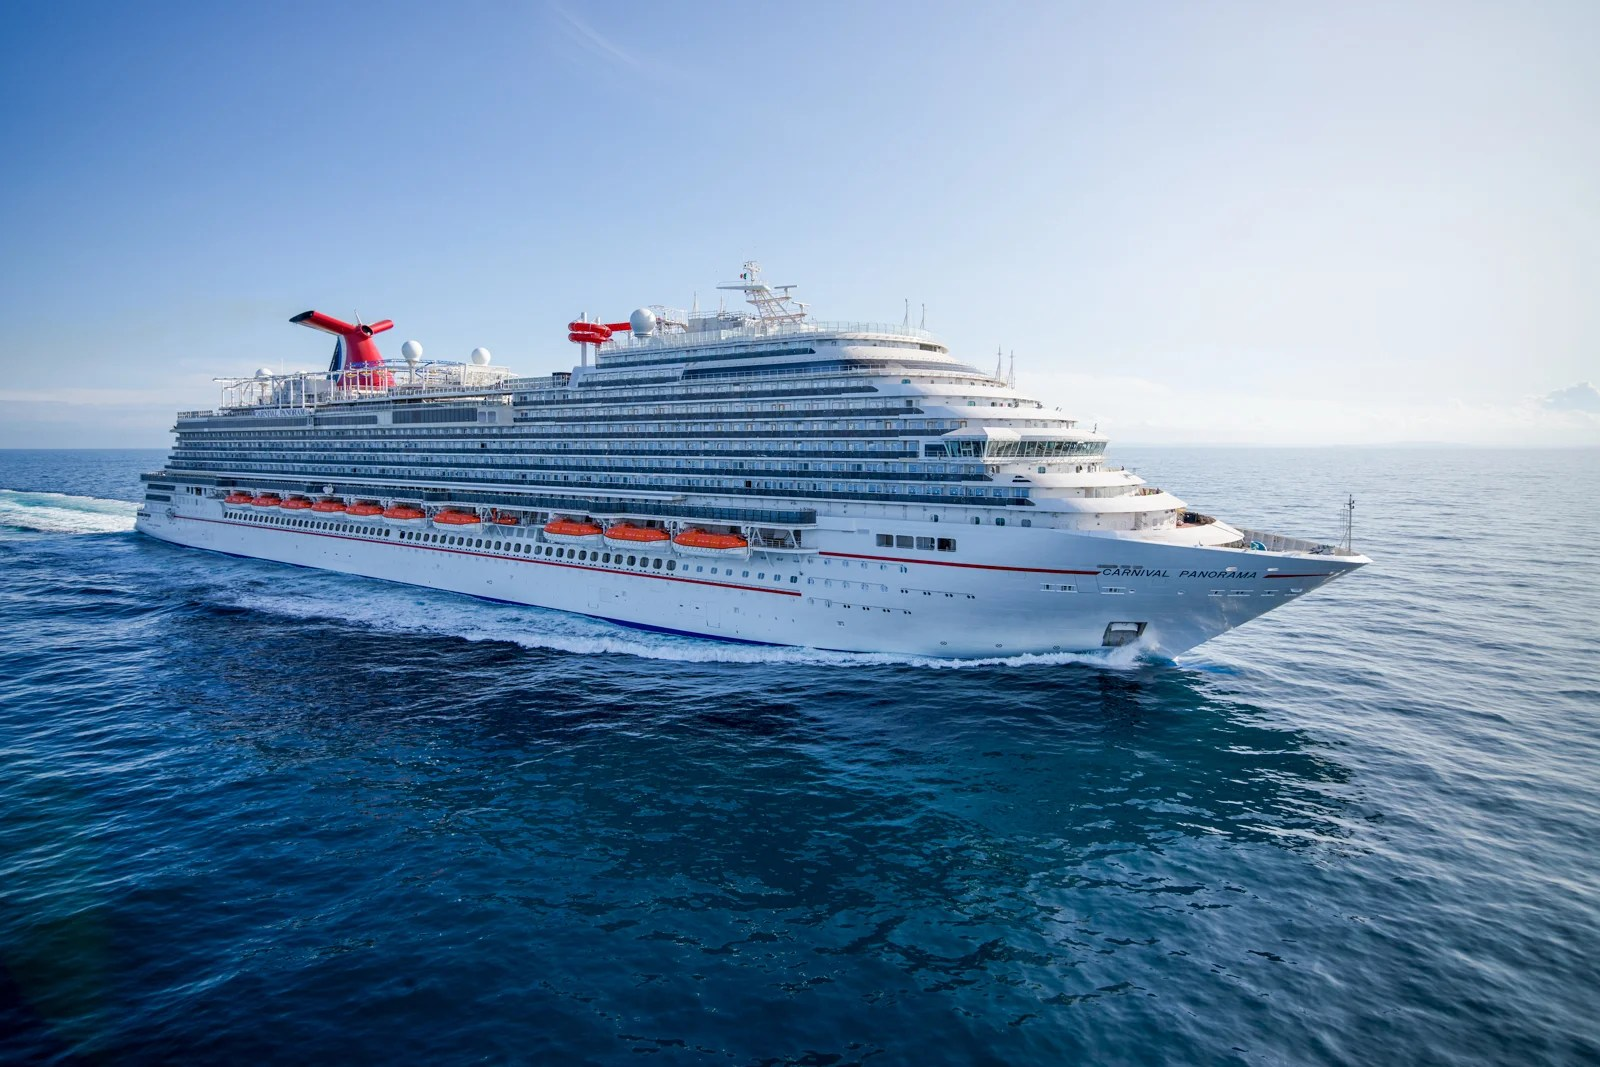 Cruisers Rejoice! 9 Cruise Lines Have Resumed Limited Sailings